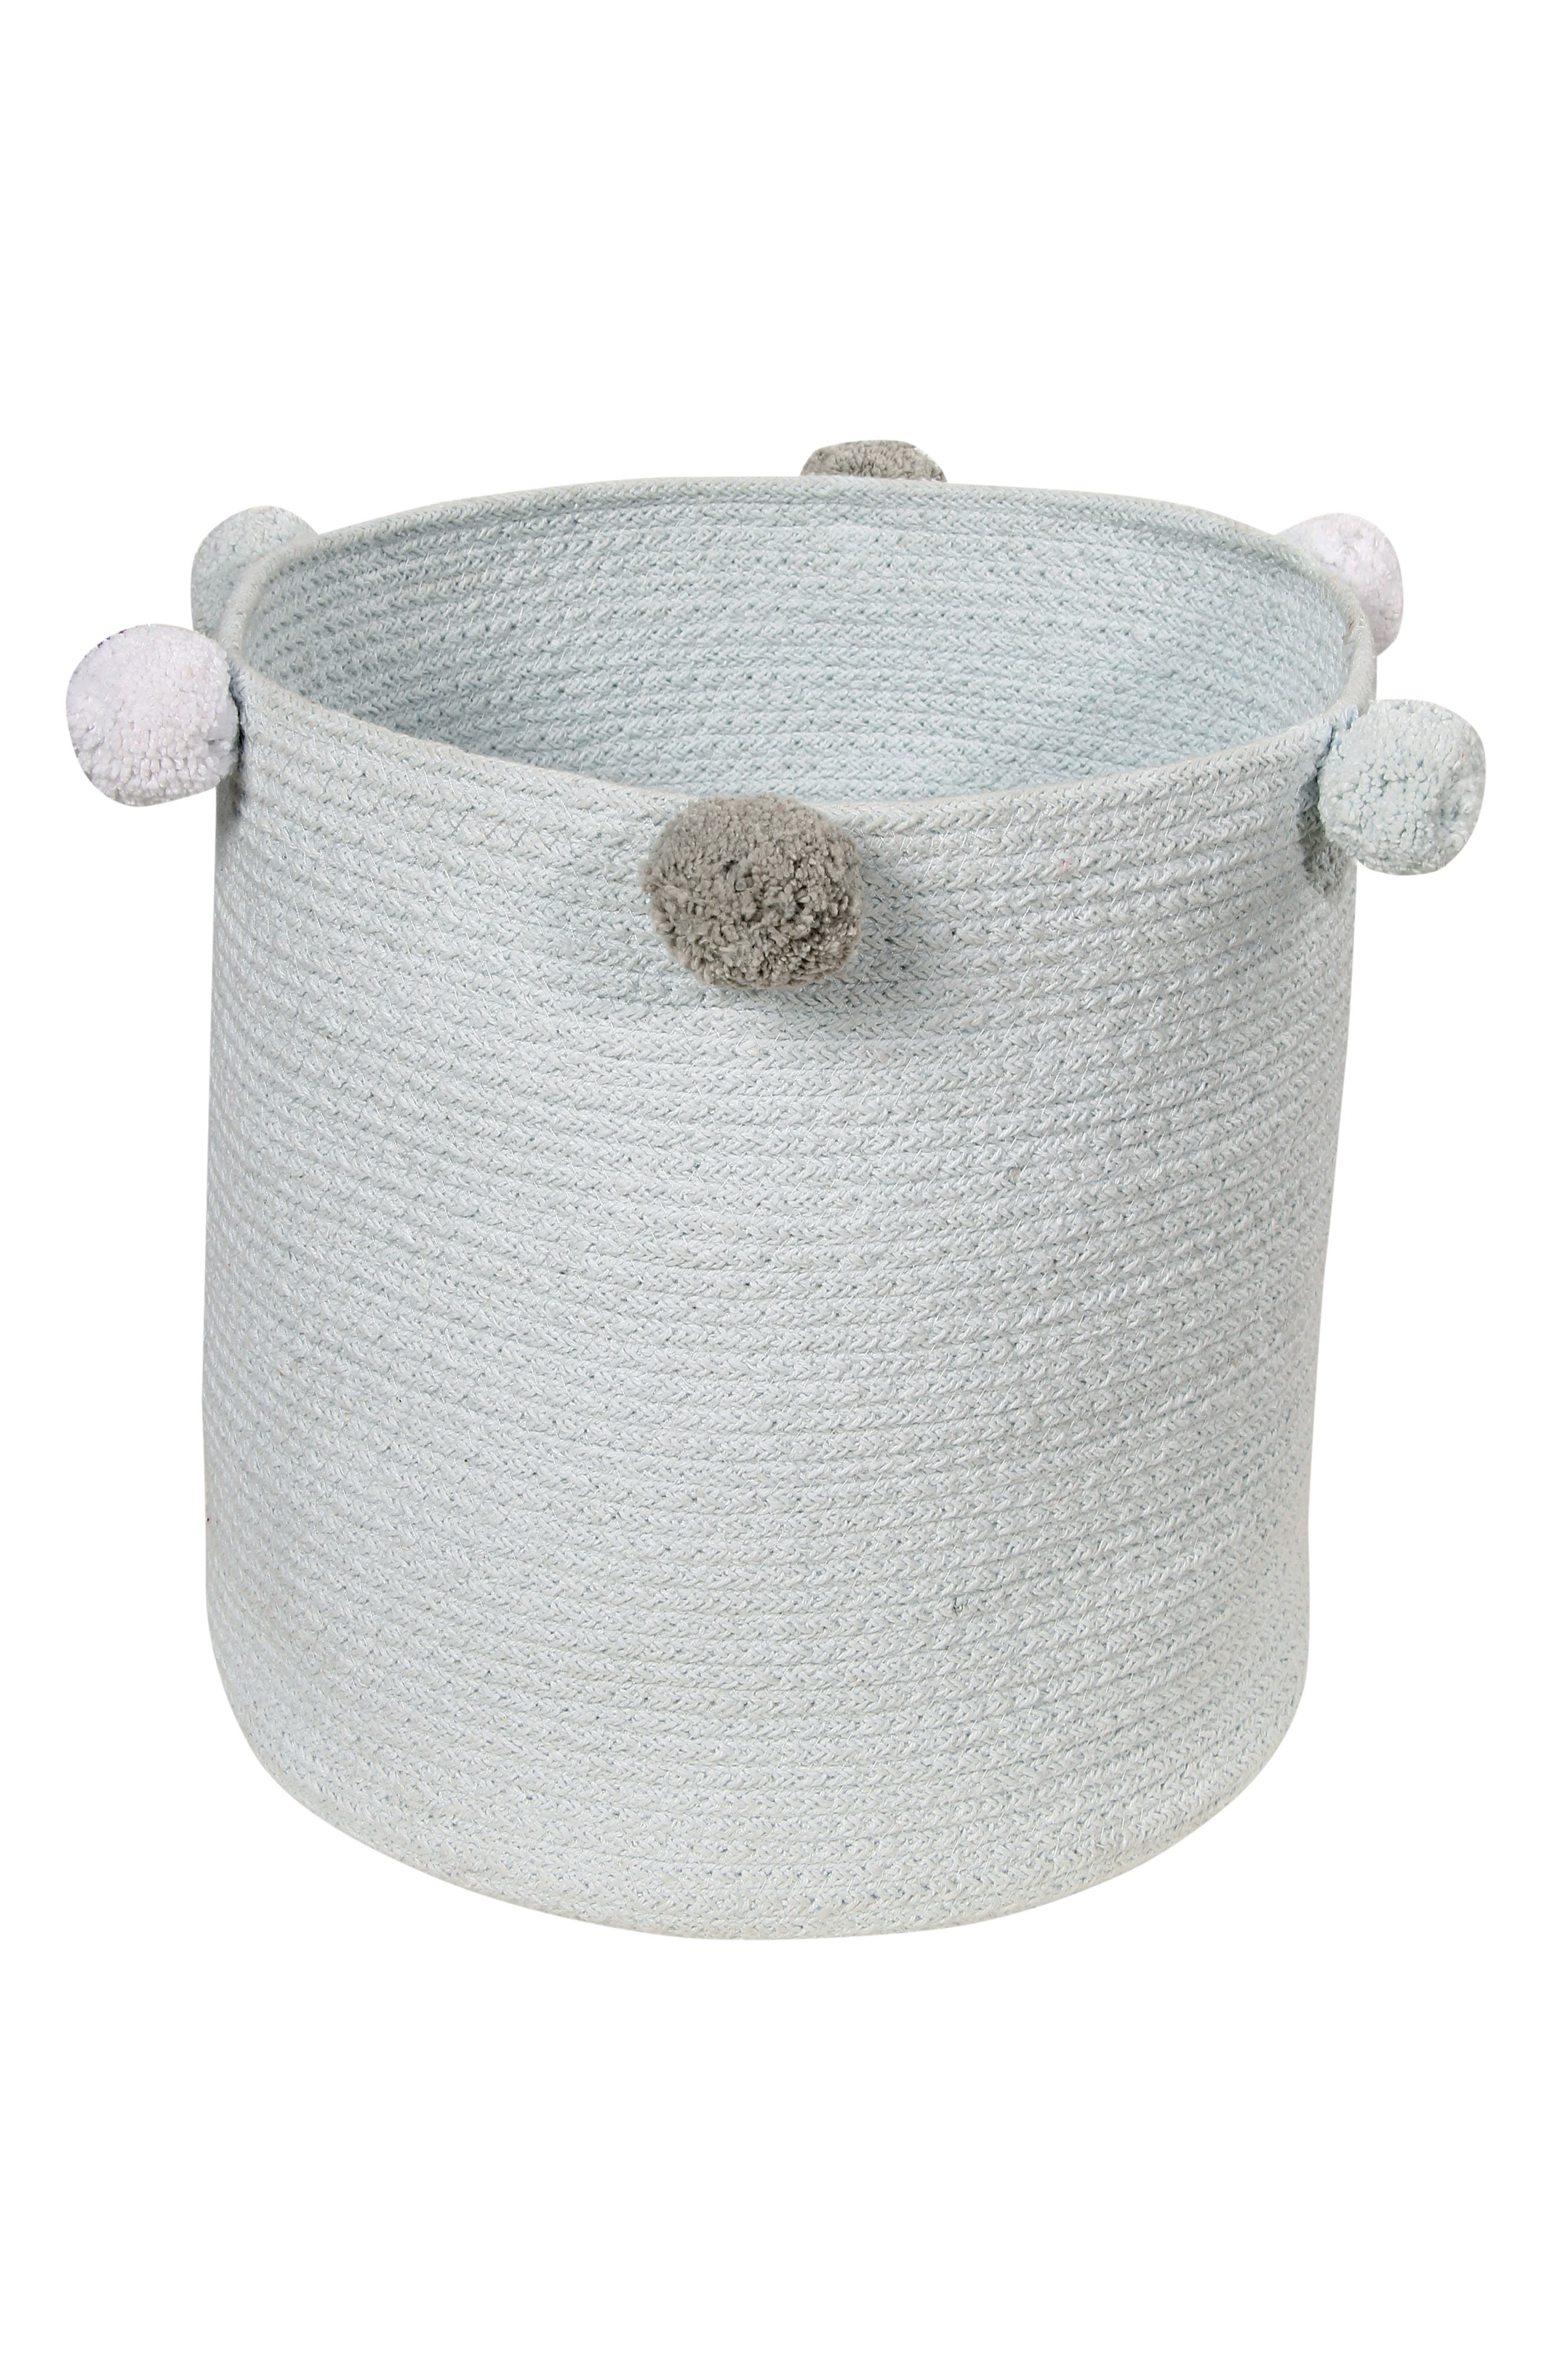 Pompom trim adds a fun flourish to a handmade basket that provides ideal toy storage while making any nursery extra charming. Style Name: Lorena Canals Bubbly Basket. Style Number: 5869426. Available in stores.